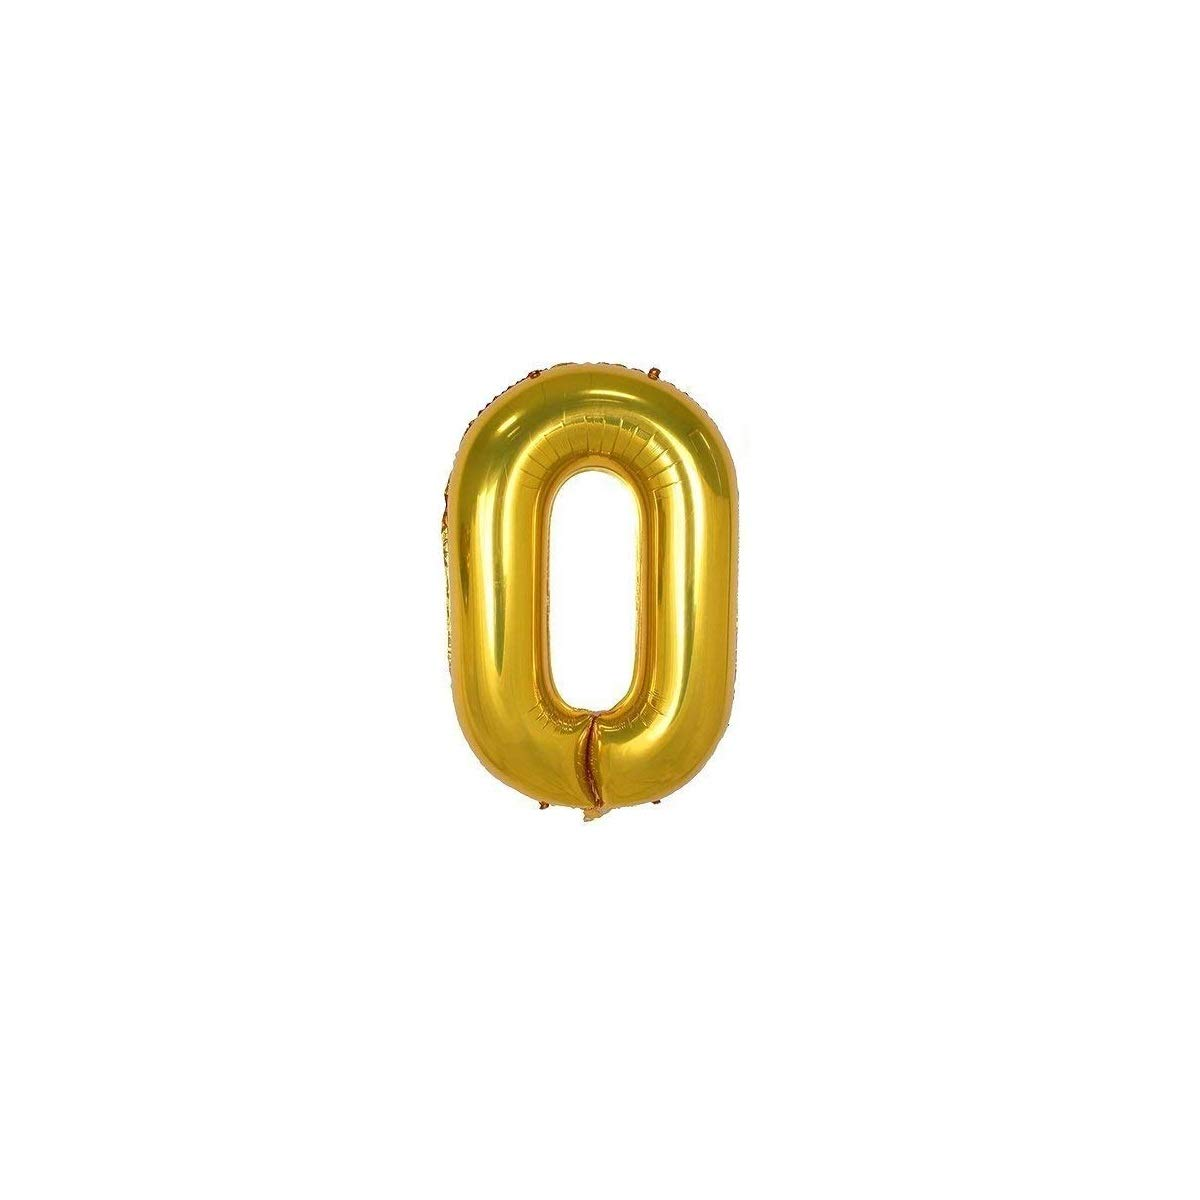 JANOU 2020 Balloons Gold 40 Inch Numbers Helium Foil Balloons for Graduation Wedding Christmas New Year Party Suppliers